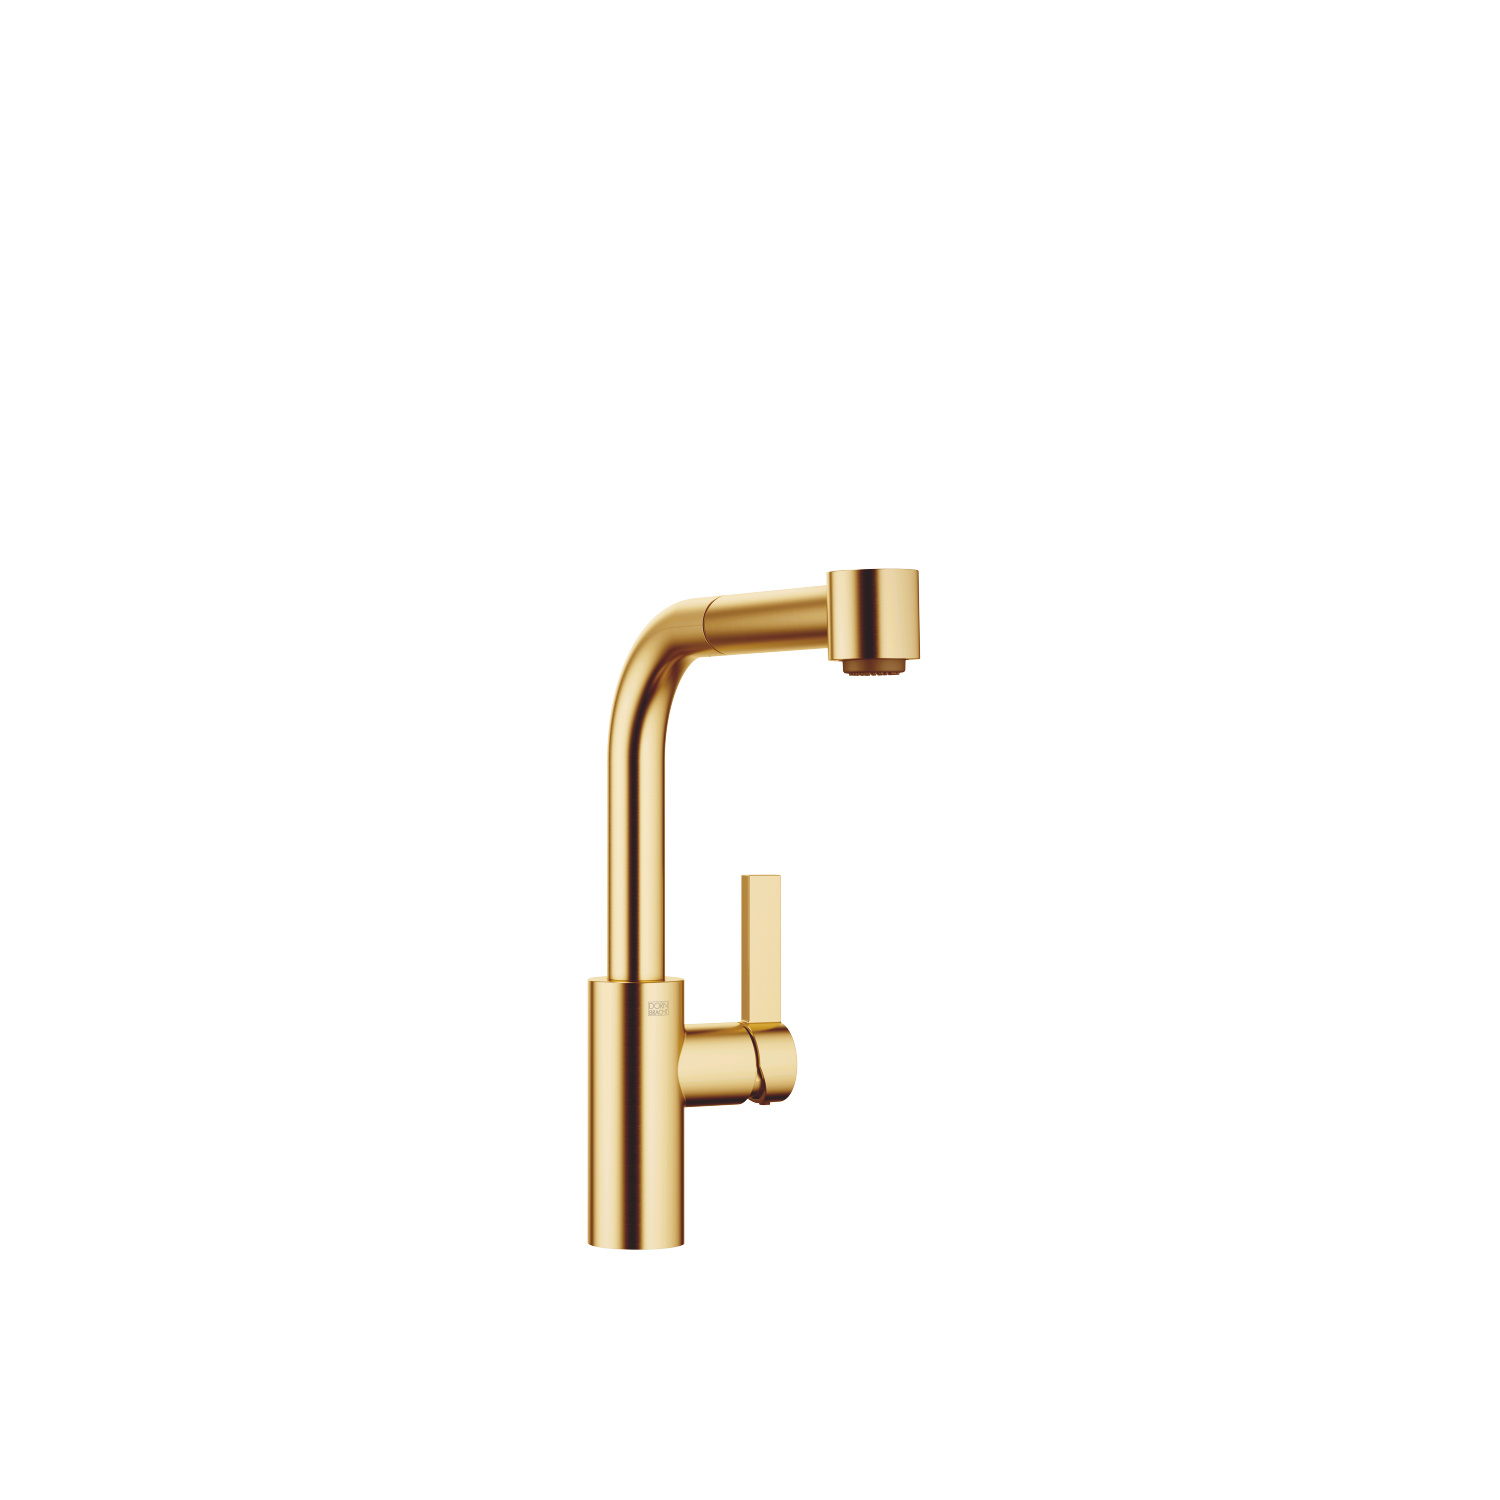 Single-lever mixer Pull-out with spray function - brushed Durabrass